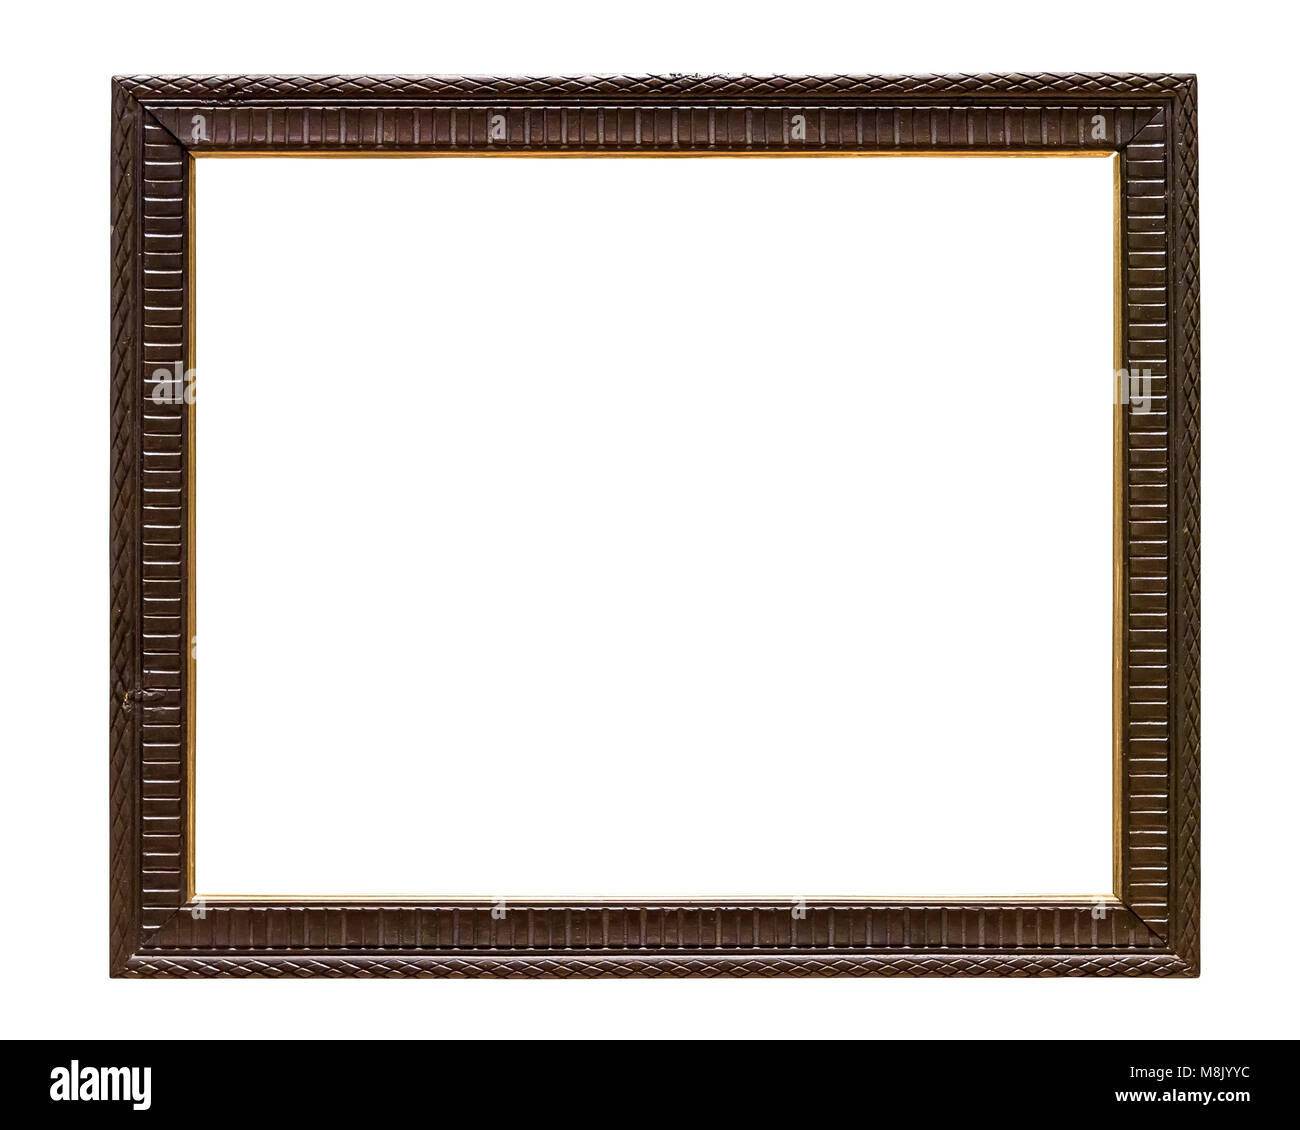 Dark wooden decorative picture frame isolated on white background with clipping path Stock Photo